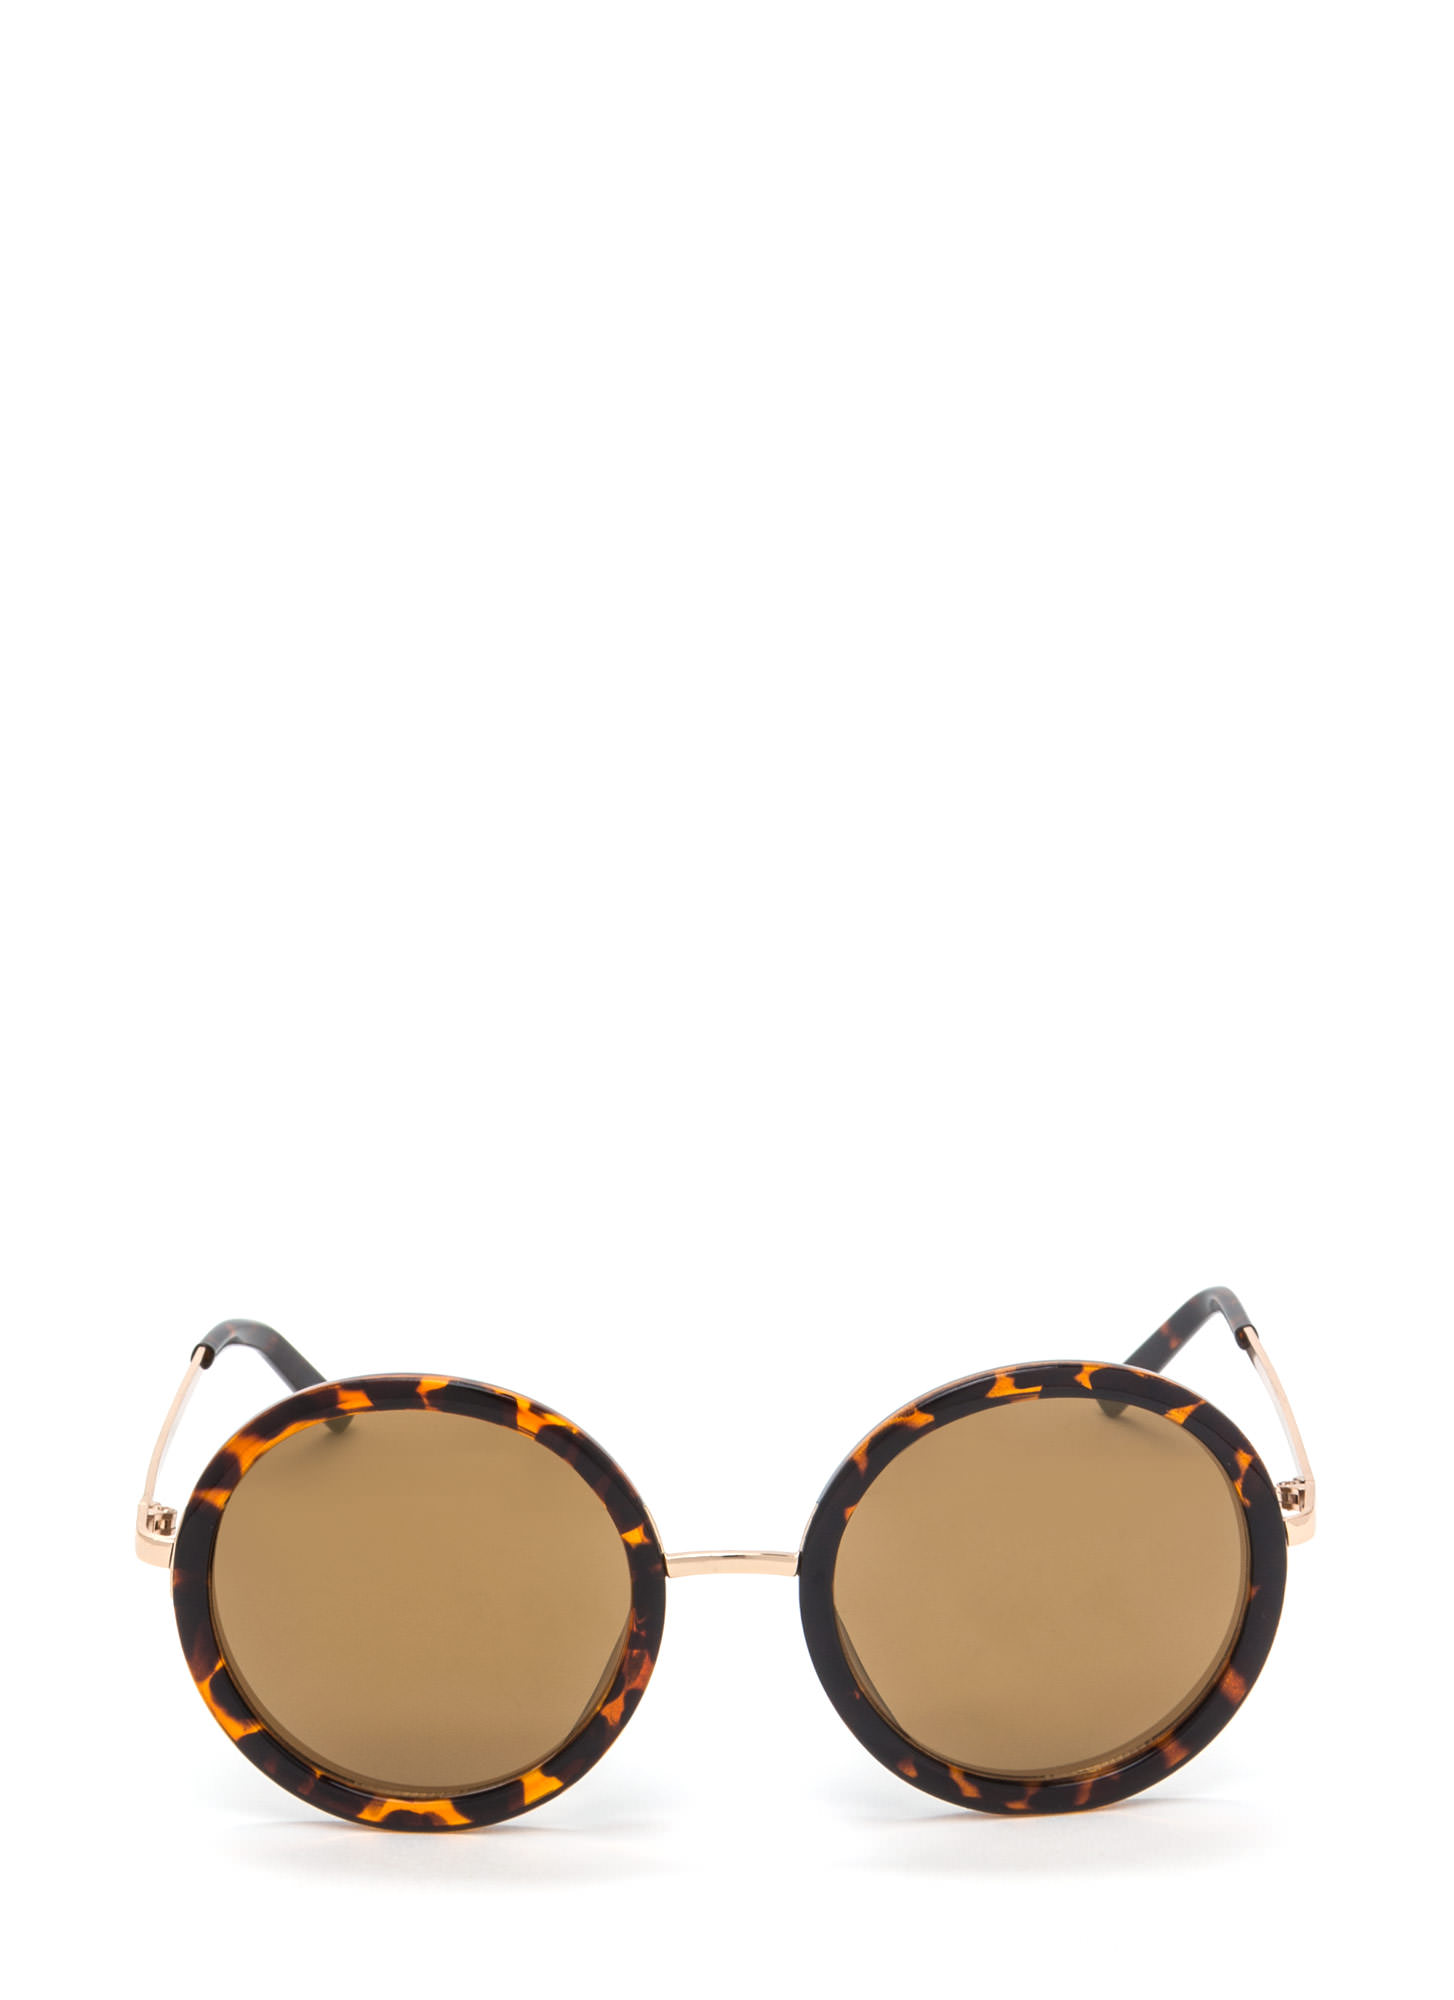 Round Of Applause Sunglasses BROWNTORT